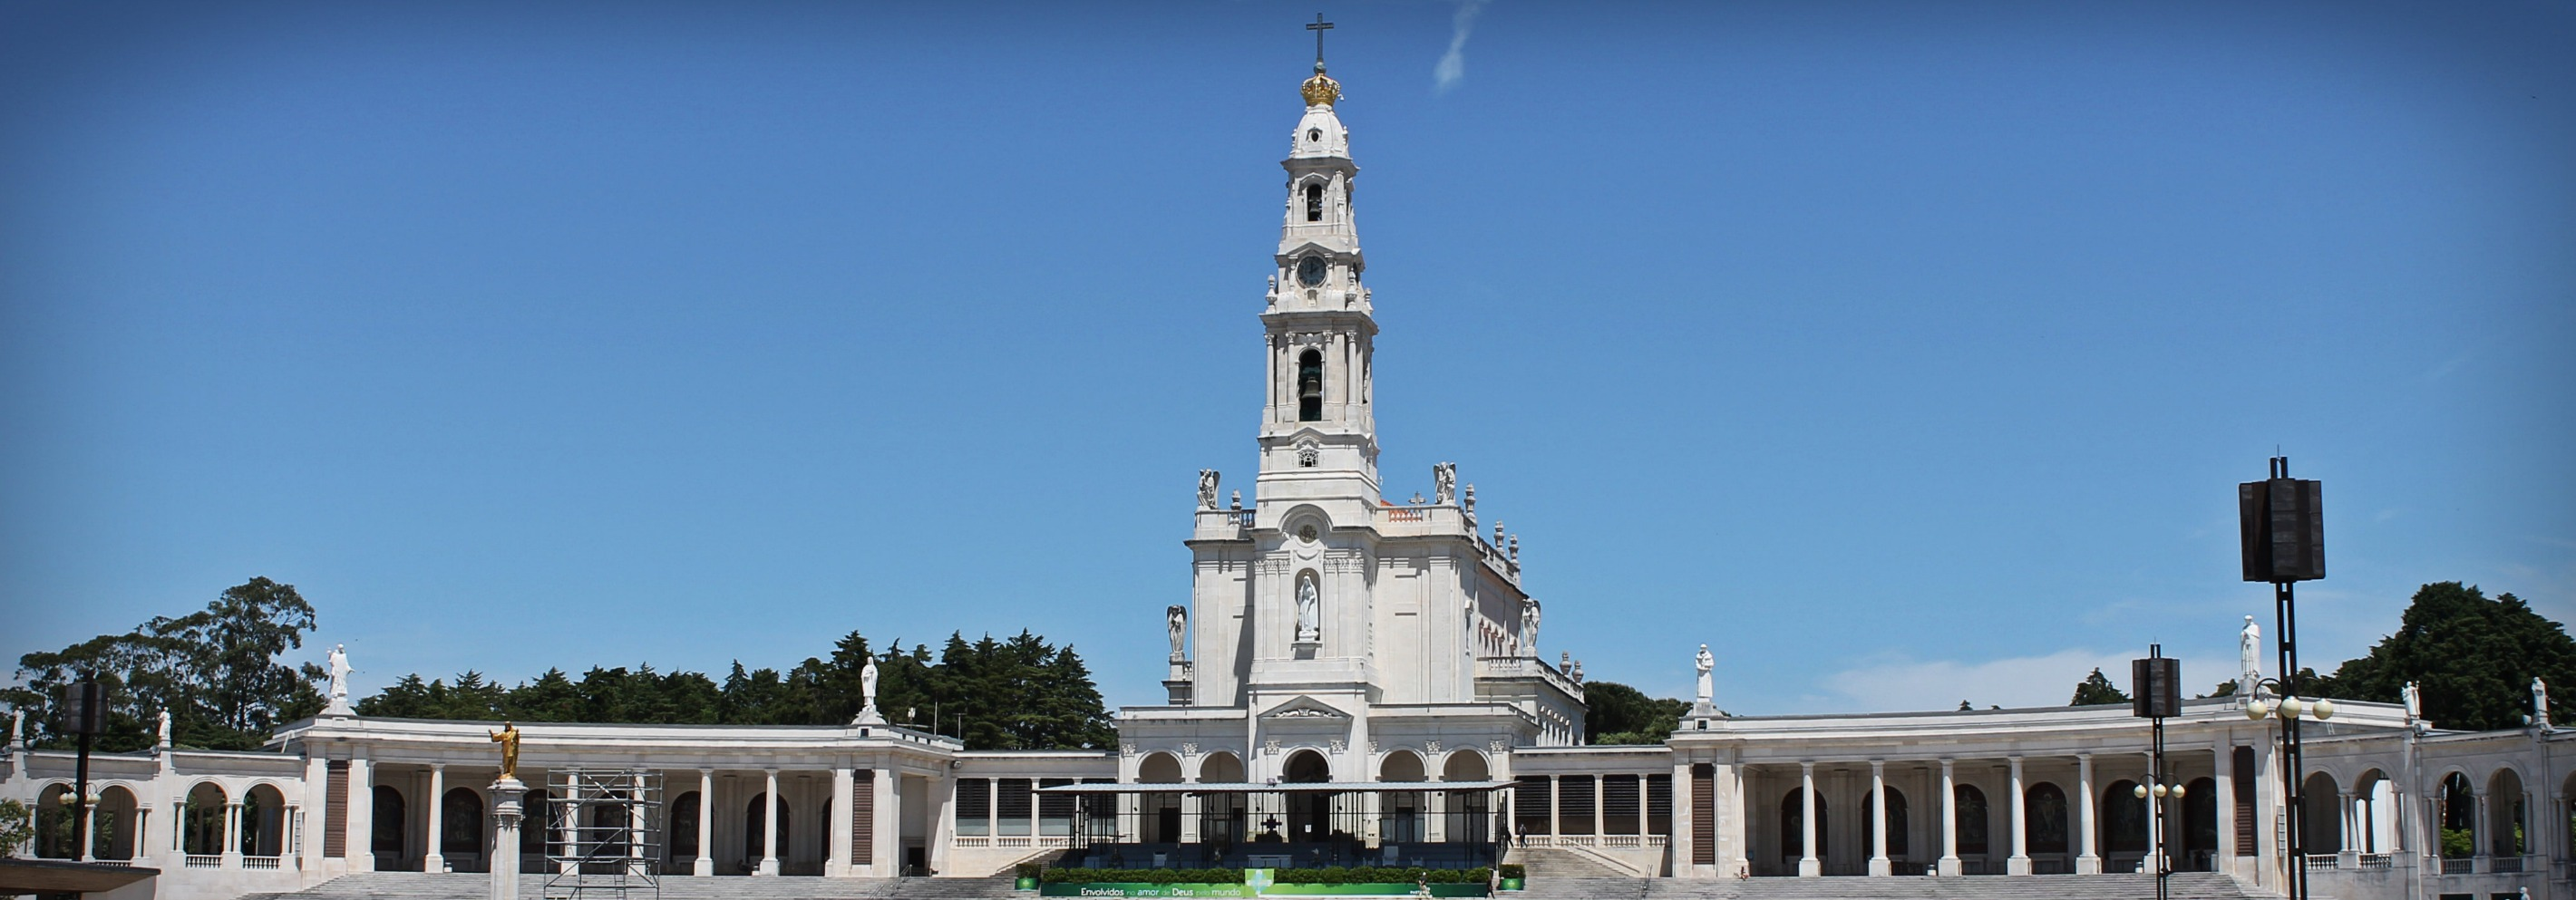 tour fatima lourdes shrines spain faith based travel